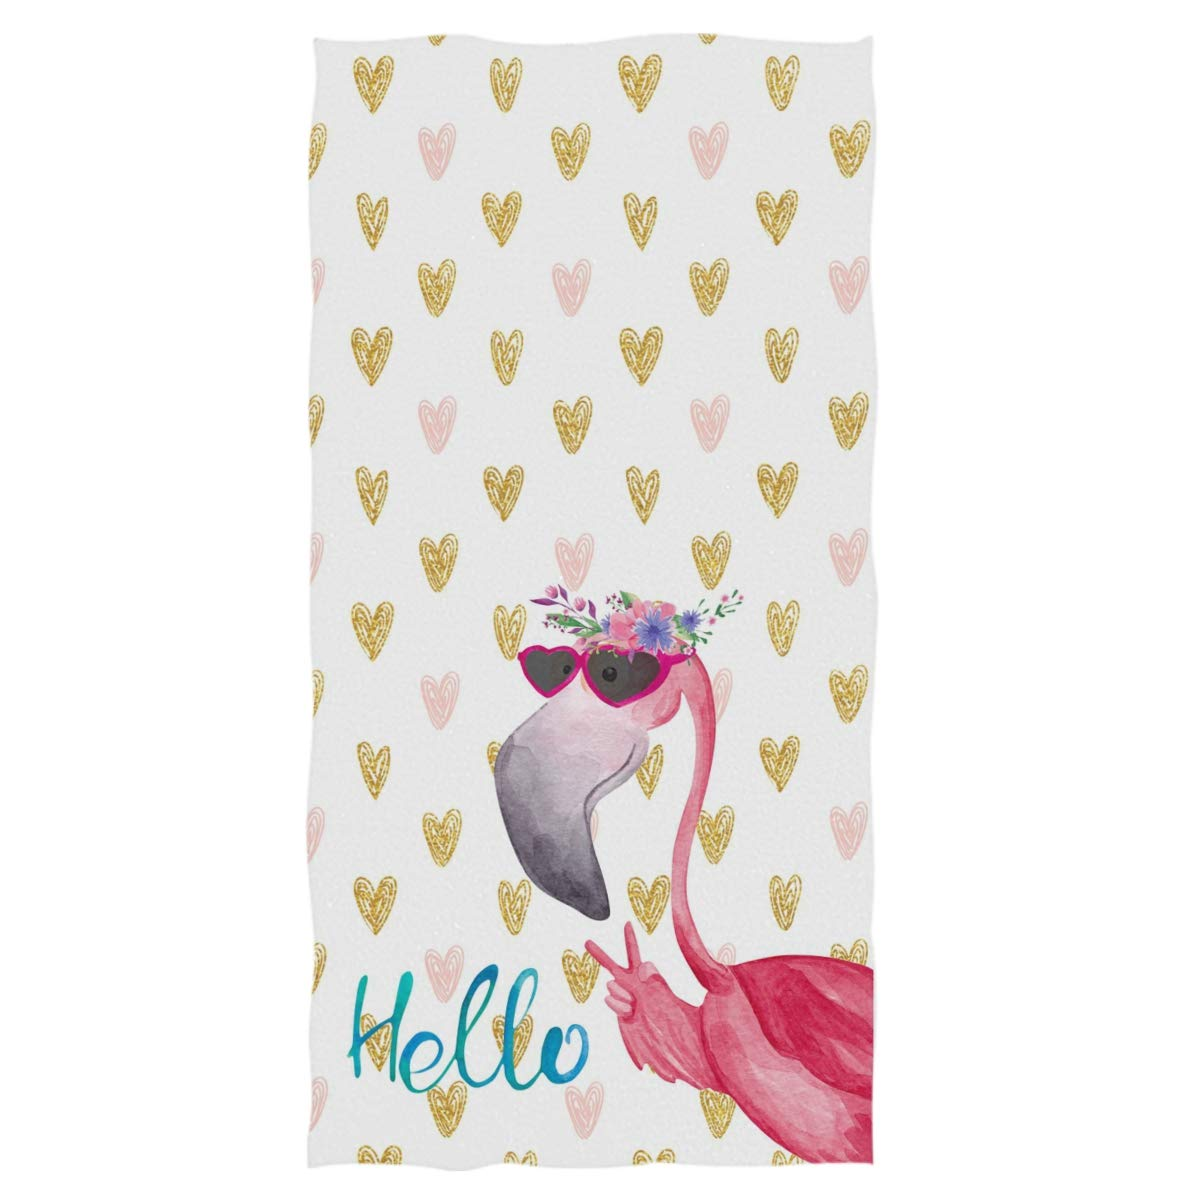 Pfrewn Hello Tropical Flamingo Hand Towels 16x30 in, Pink Golden Hearts Floral Thin Bathroom Towel, Ultra Soft Highly Absorbent Small Bath Towel Bathroom Decor